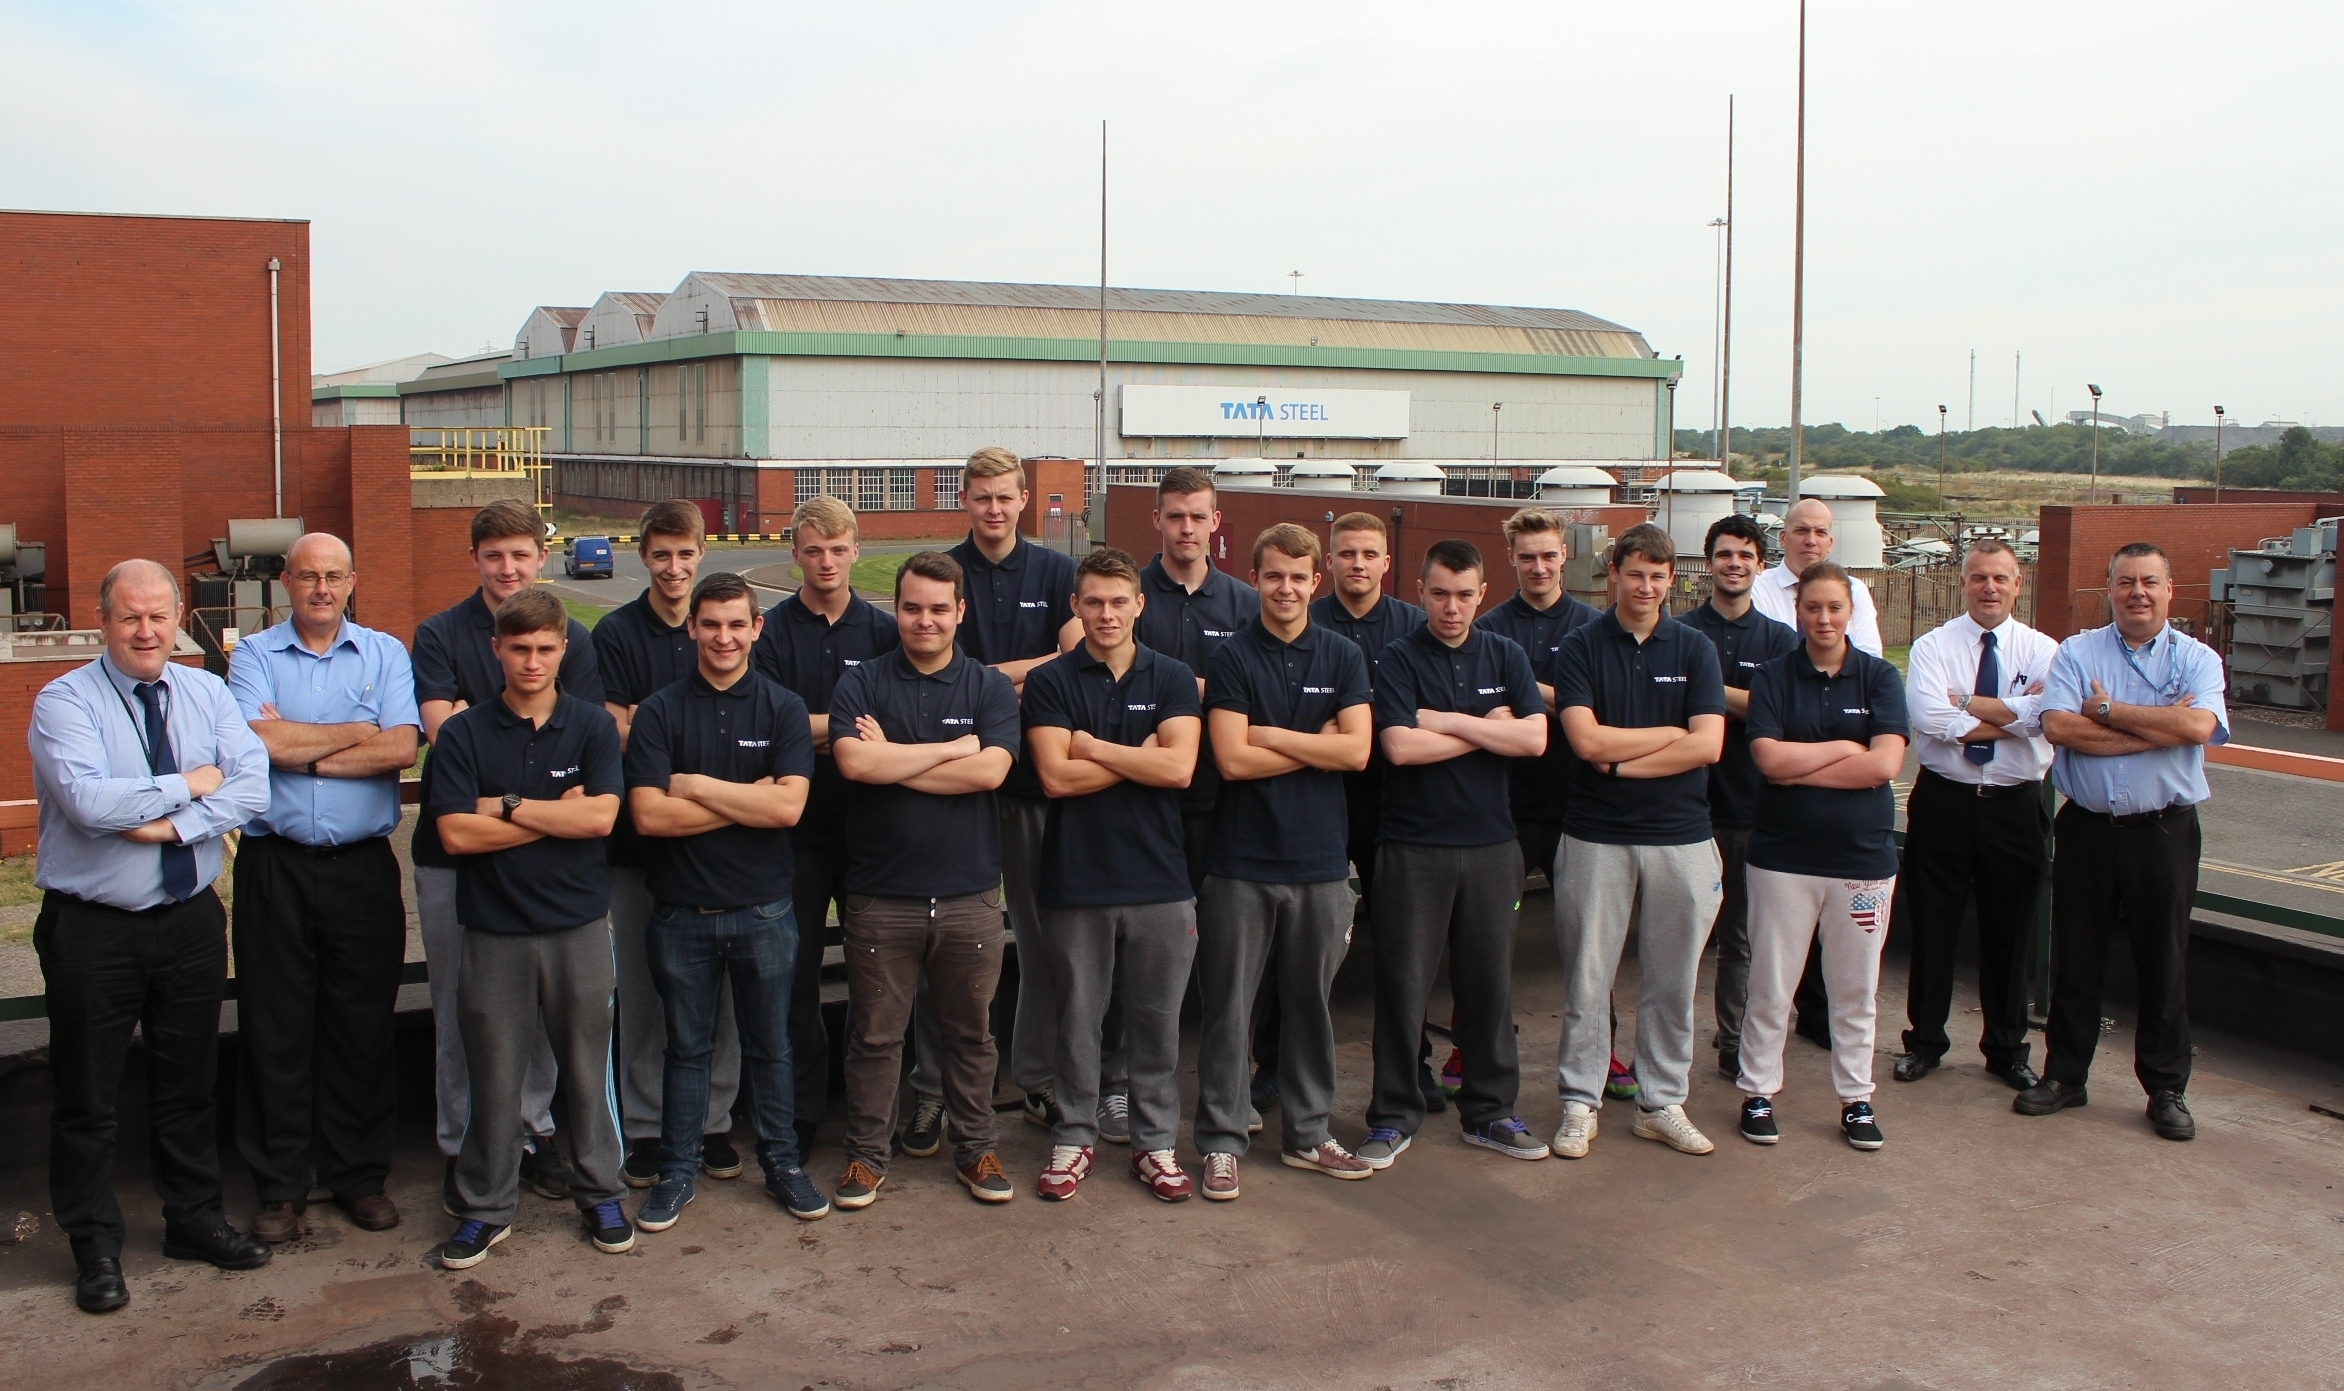 The new Tata Steel apprentices with TTE and Tata staff.